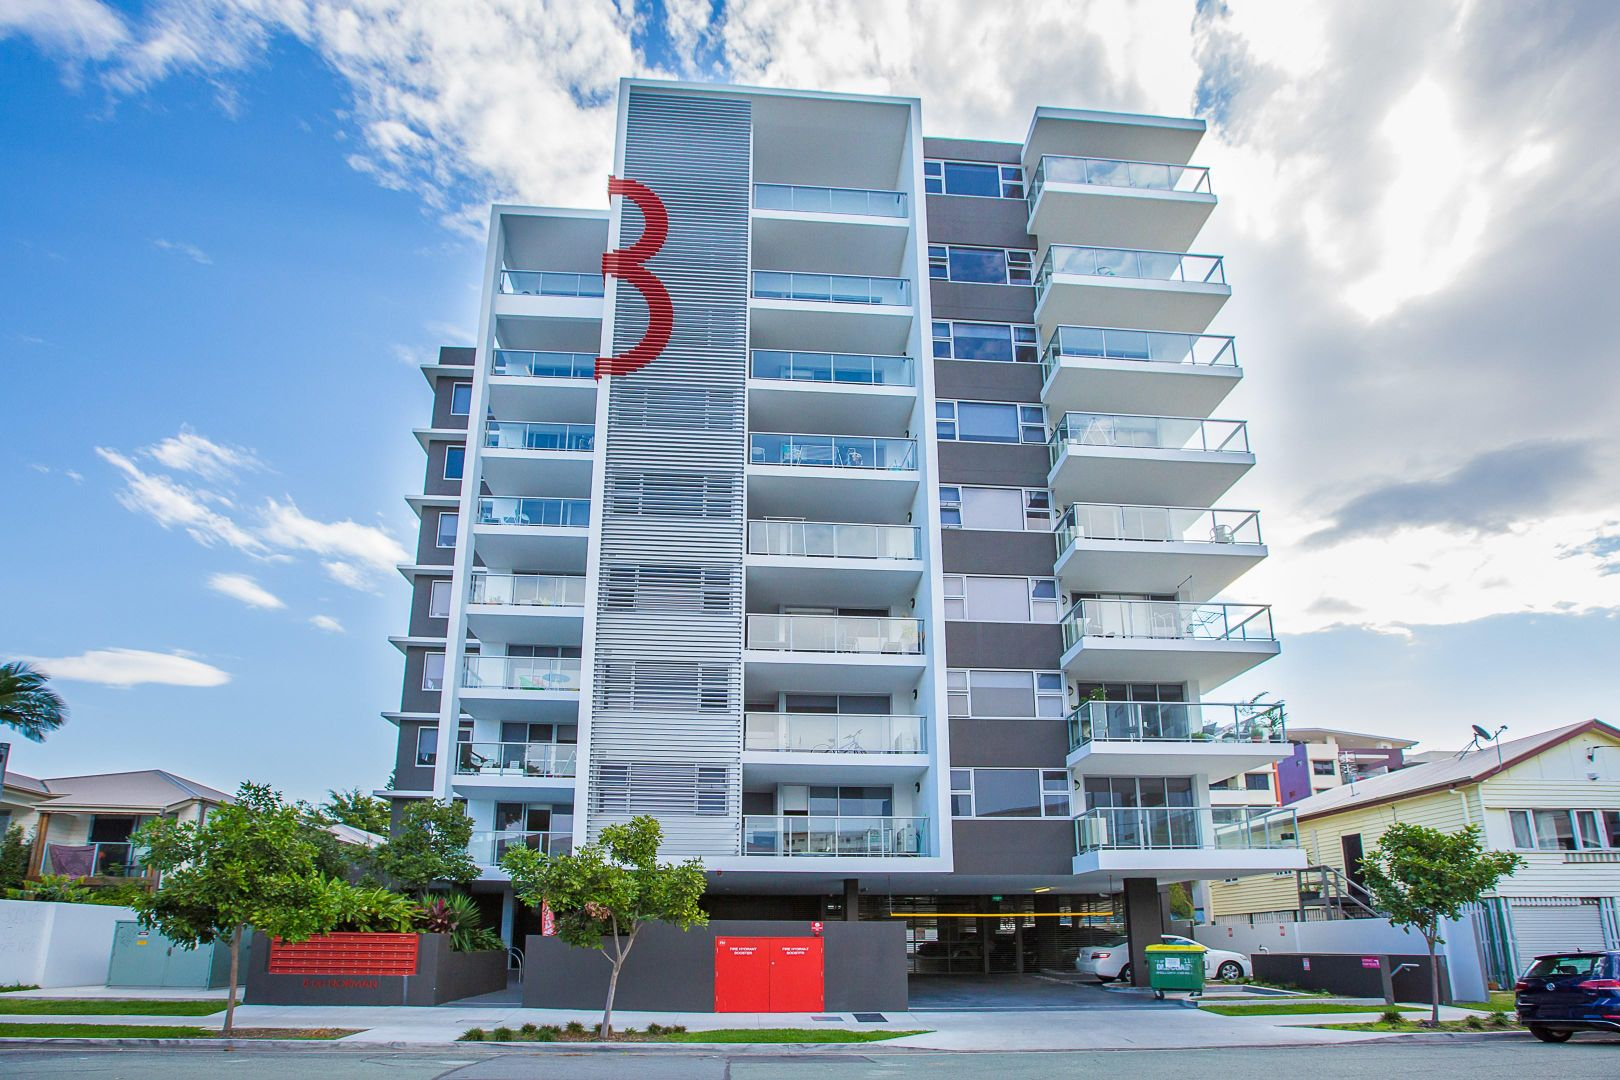 304/8 NORMAN ST, Southport QLD 4215, Image 0